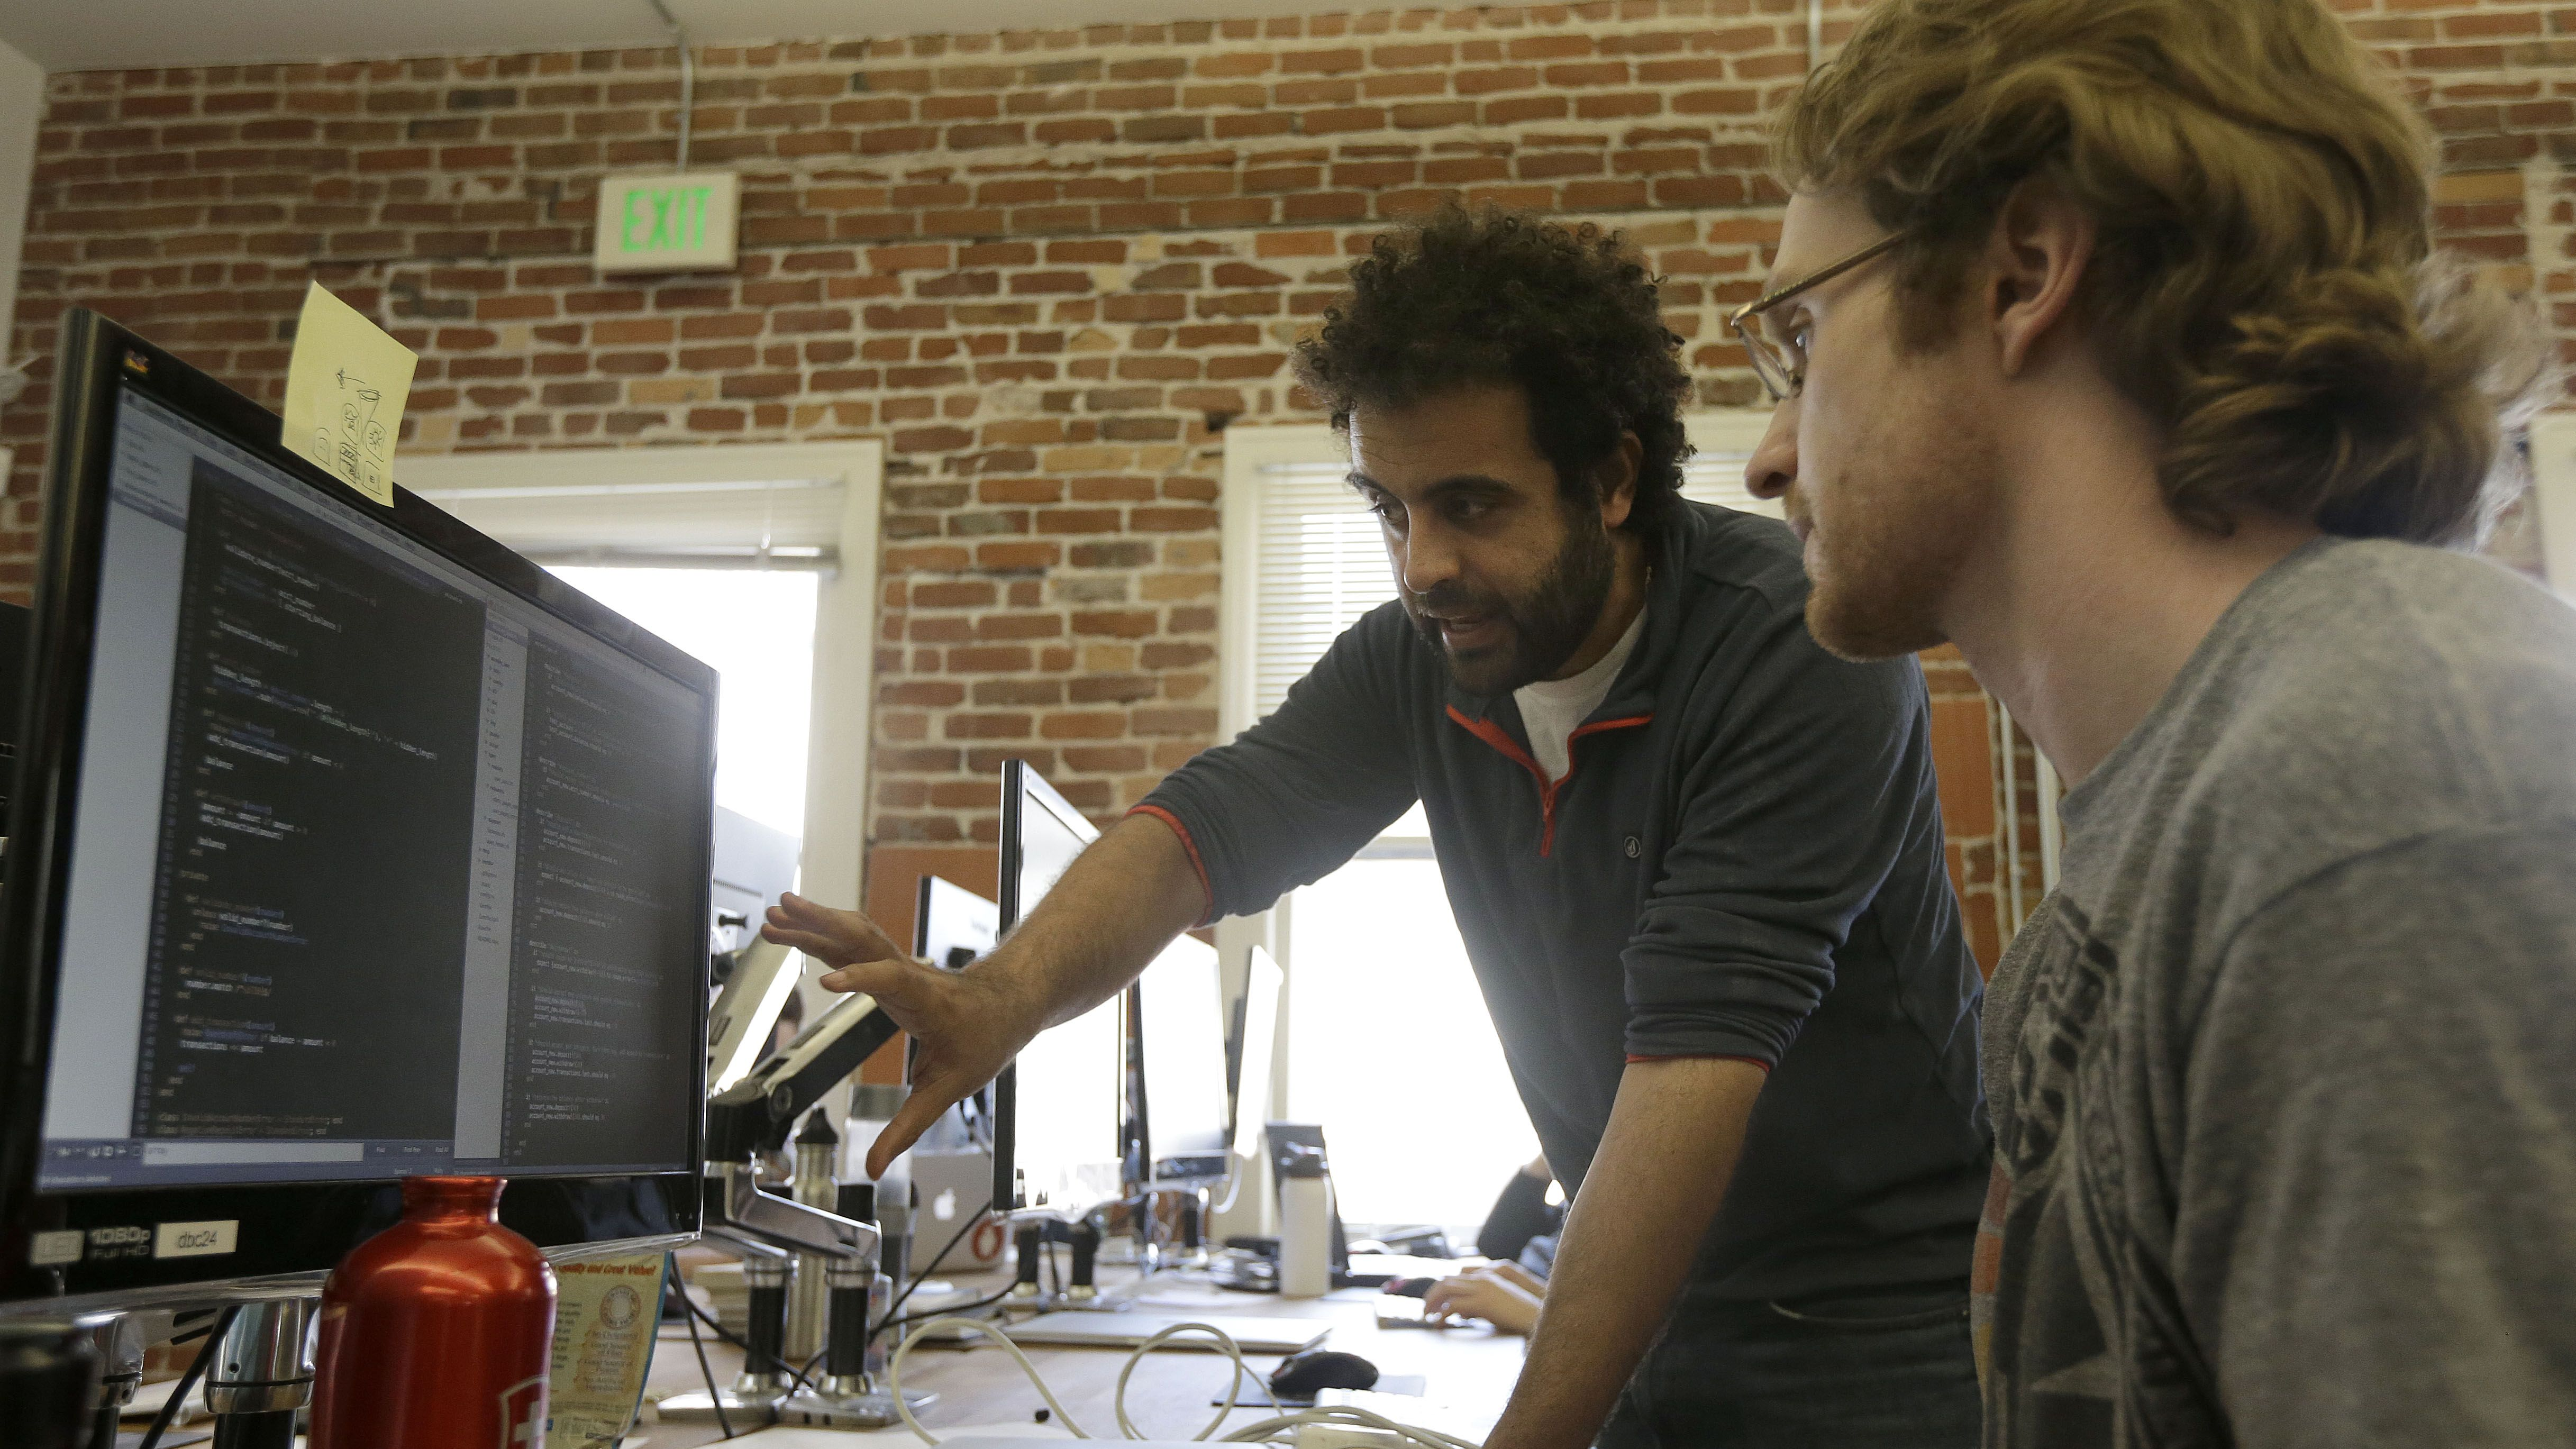 "Shereef Bishay, co-founder of Dev Bootcamp, center, talks with student Ryan Guerrettaz during a class at Dev Bootcamp in San Francisco, Tuesday, April 2, 2013. Dev Bootcamp is one of a new breed of computer-programming schools that's proliferating in San Francisco and other U.S. tech hubs. These ""hacker boot camps"" promise to teach students how to write code in two or three months and help them get hired as web developers, with starting salaries between $80,000 and $100,000, often within days or weeks of graduation. (AP Photo/Jeff Chiu)"